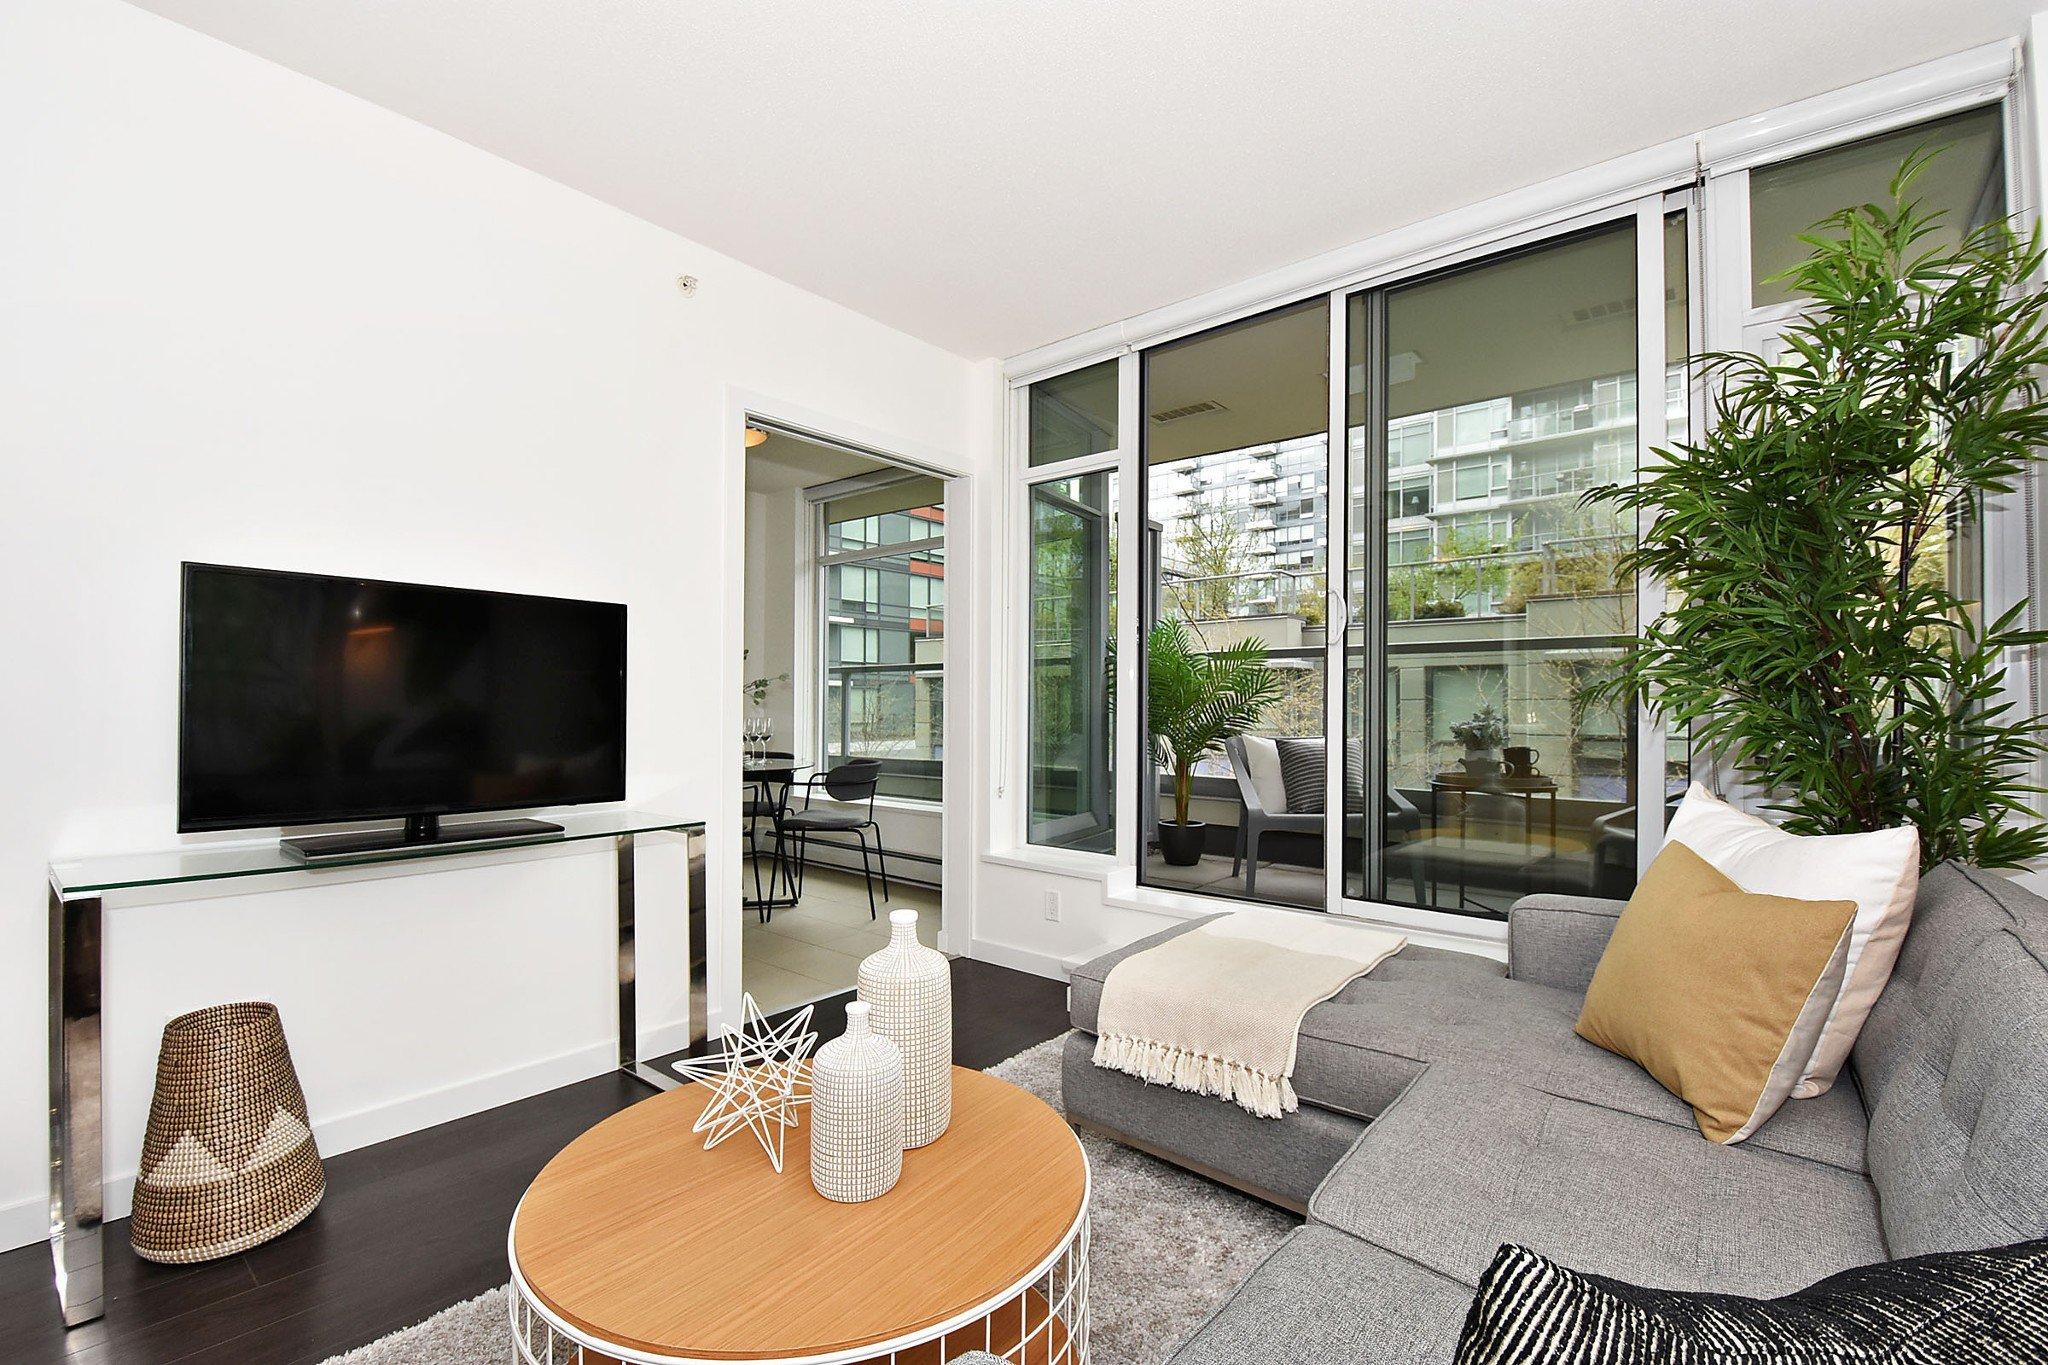 Photo 4: Photos: 306 138 W 1ST AVENUE in Vancouver: False Creek Condo for sale (Vancouver West)  : MLS®# R2360592